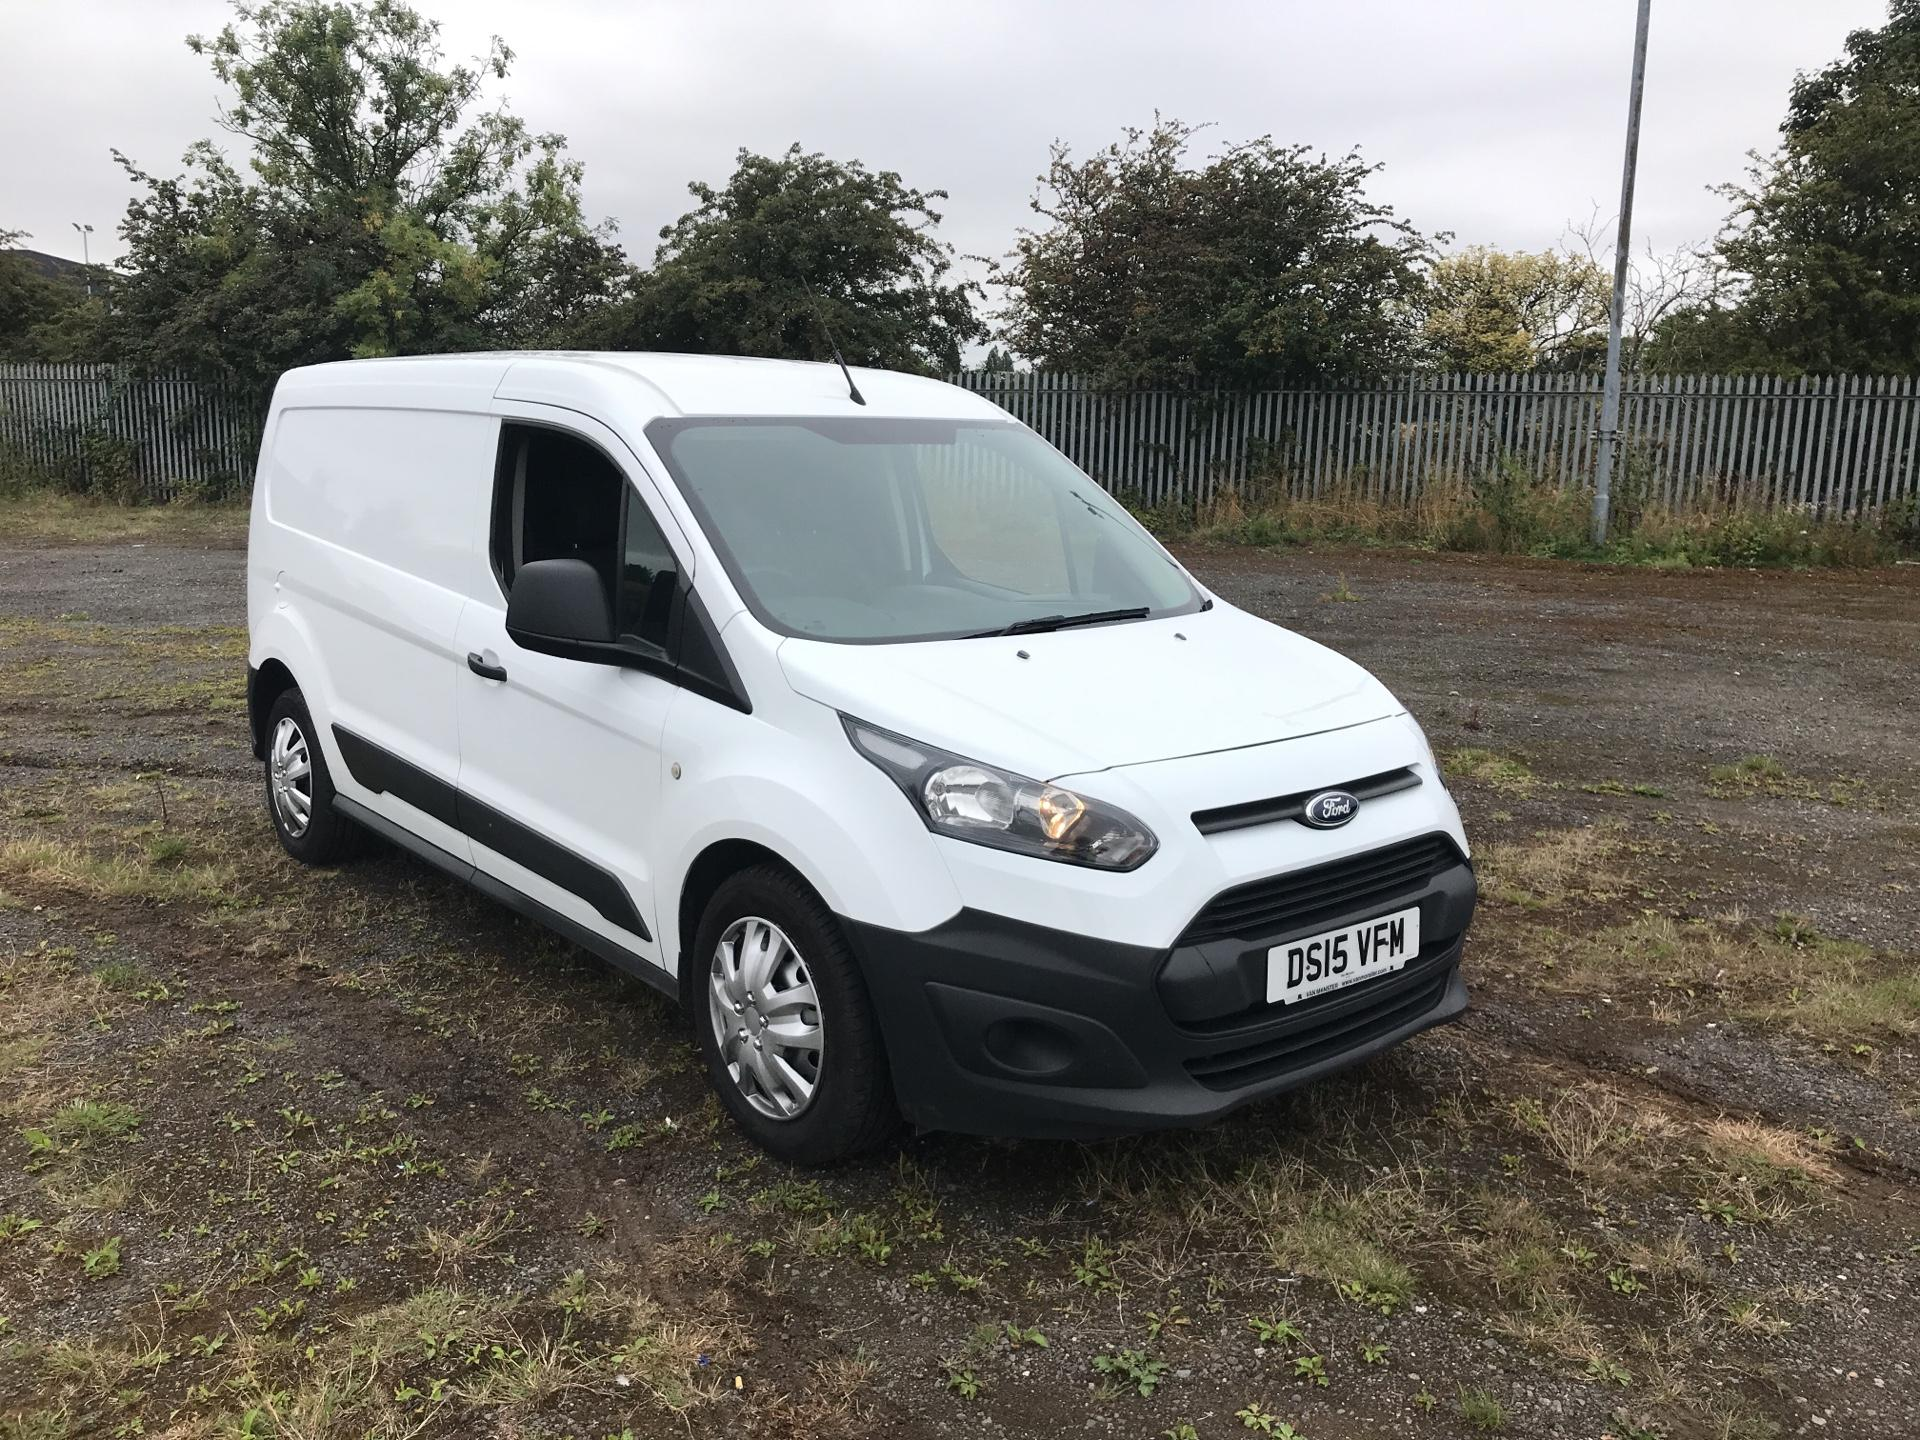 2015 Ford Transit Connect 1.6 Tdci 115Ps Van (DS15VFM)